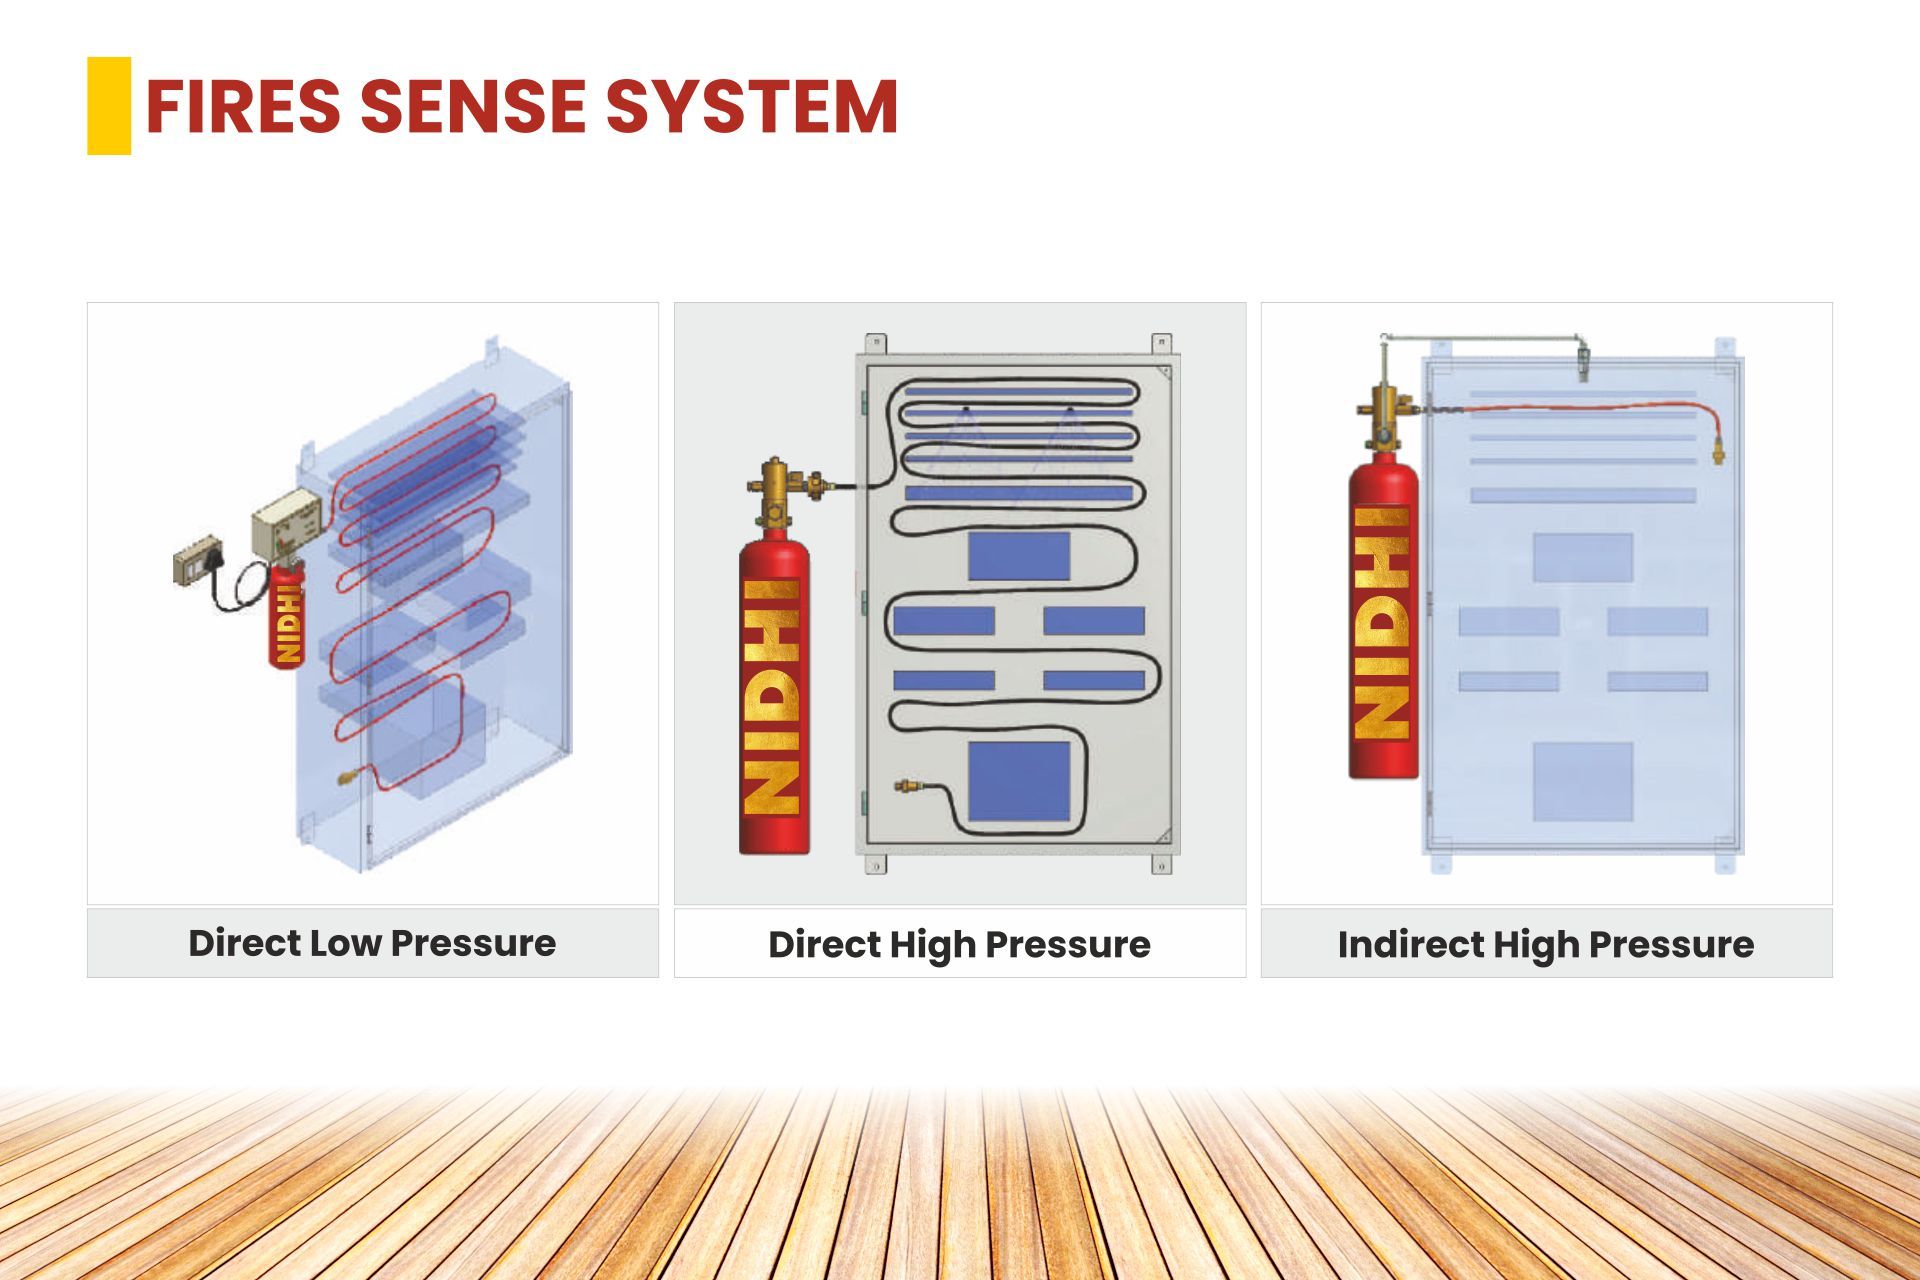 FIRE SENSE SYSTEM Product 4